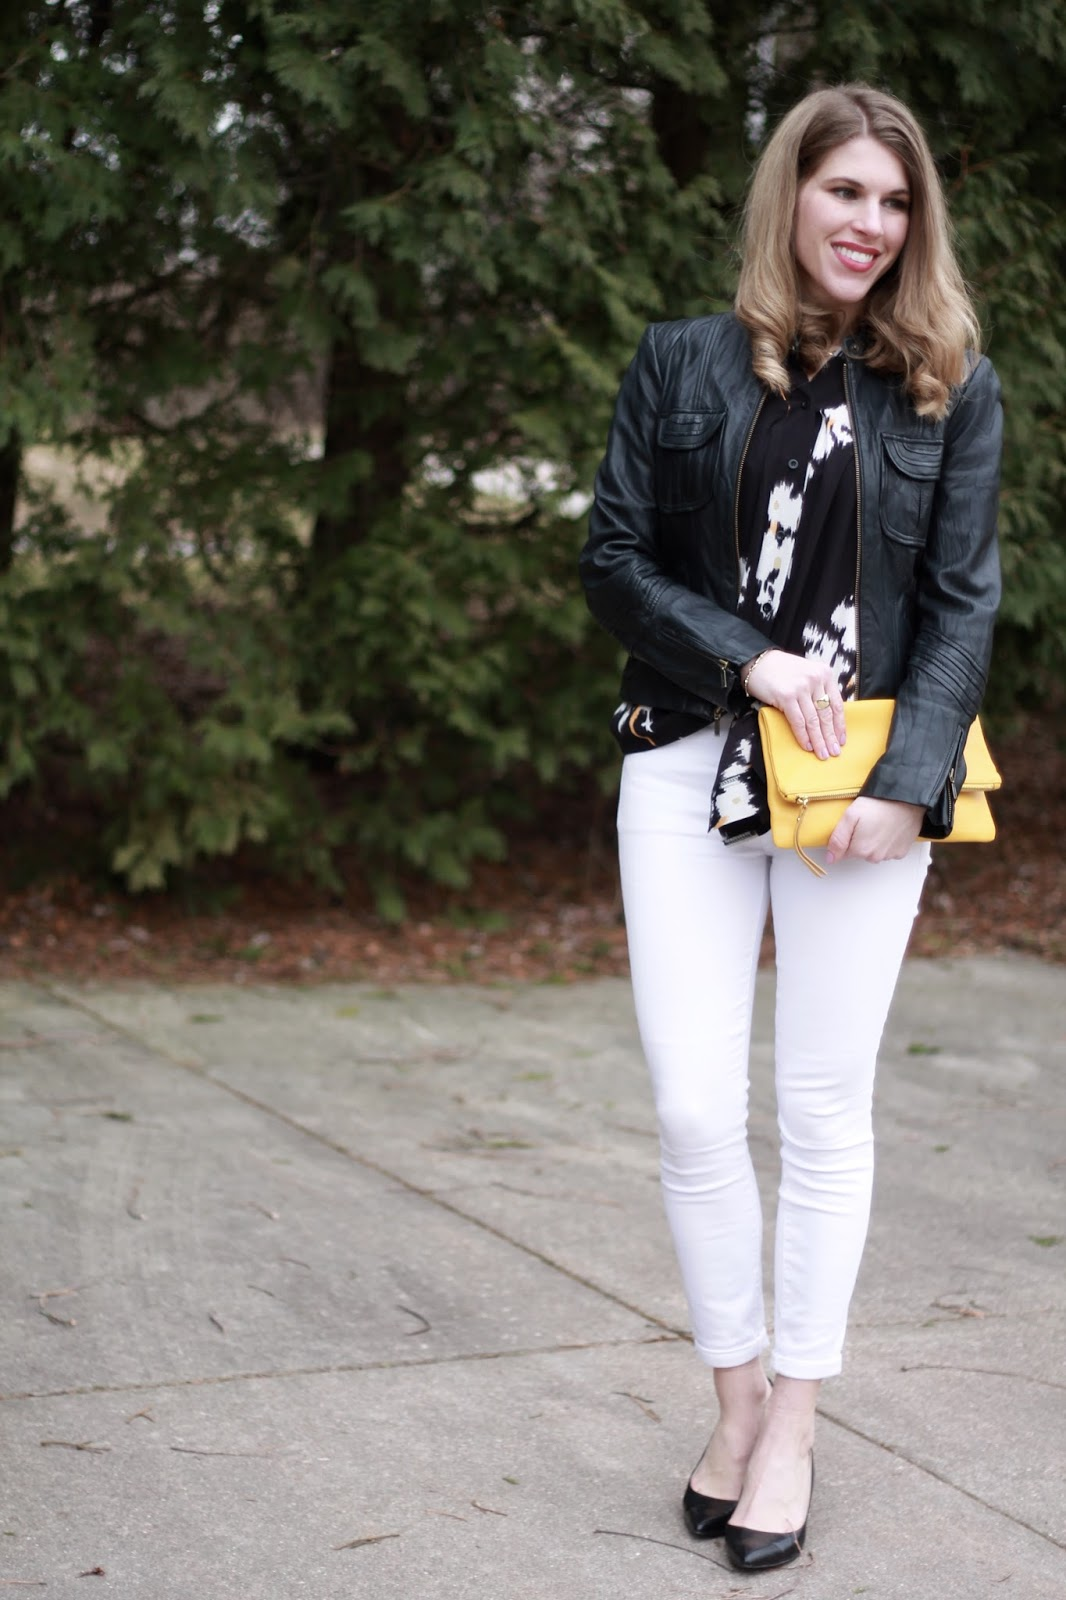 black floral tie top, black moto jacket, white jeans, black heels, yellow clutch